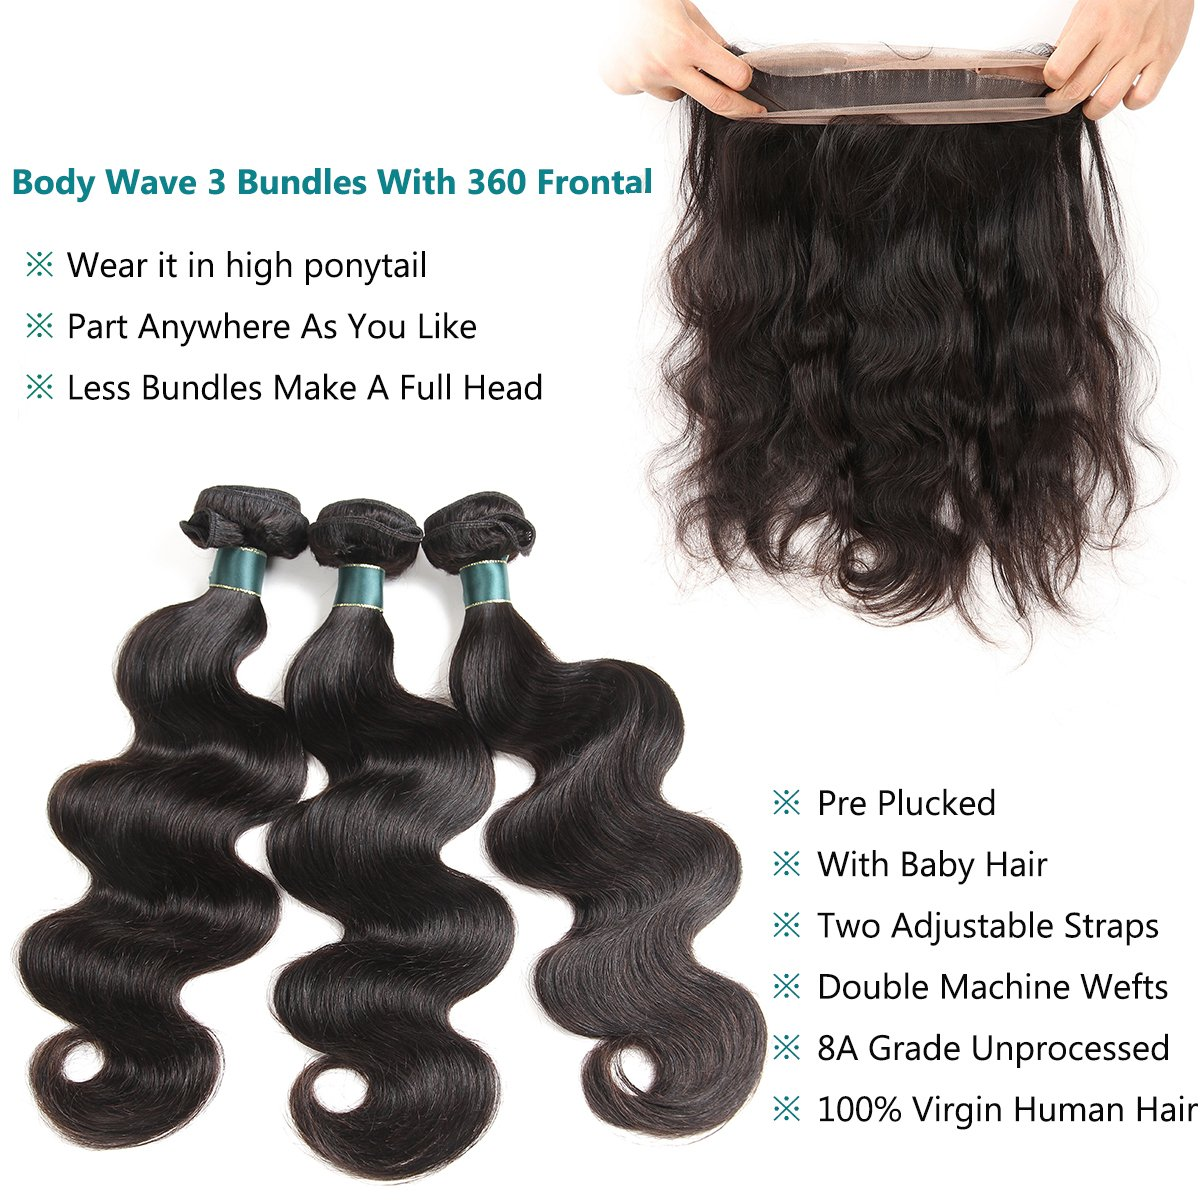 360 Lace Frontal with Bundles Pre Plucked 8A Brazilian Body Wave Virgin Hair Bunldes with 360 Lace Frontal Closure 3 Bundles brazilian hair with frontal Baby Hair (18 20 22+16 360Frontal) by Ashimary (Image #3)